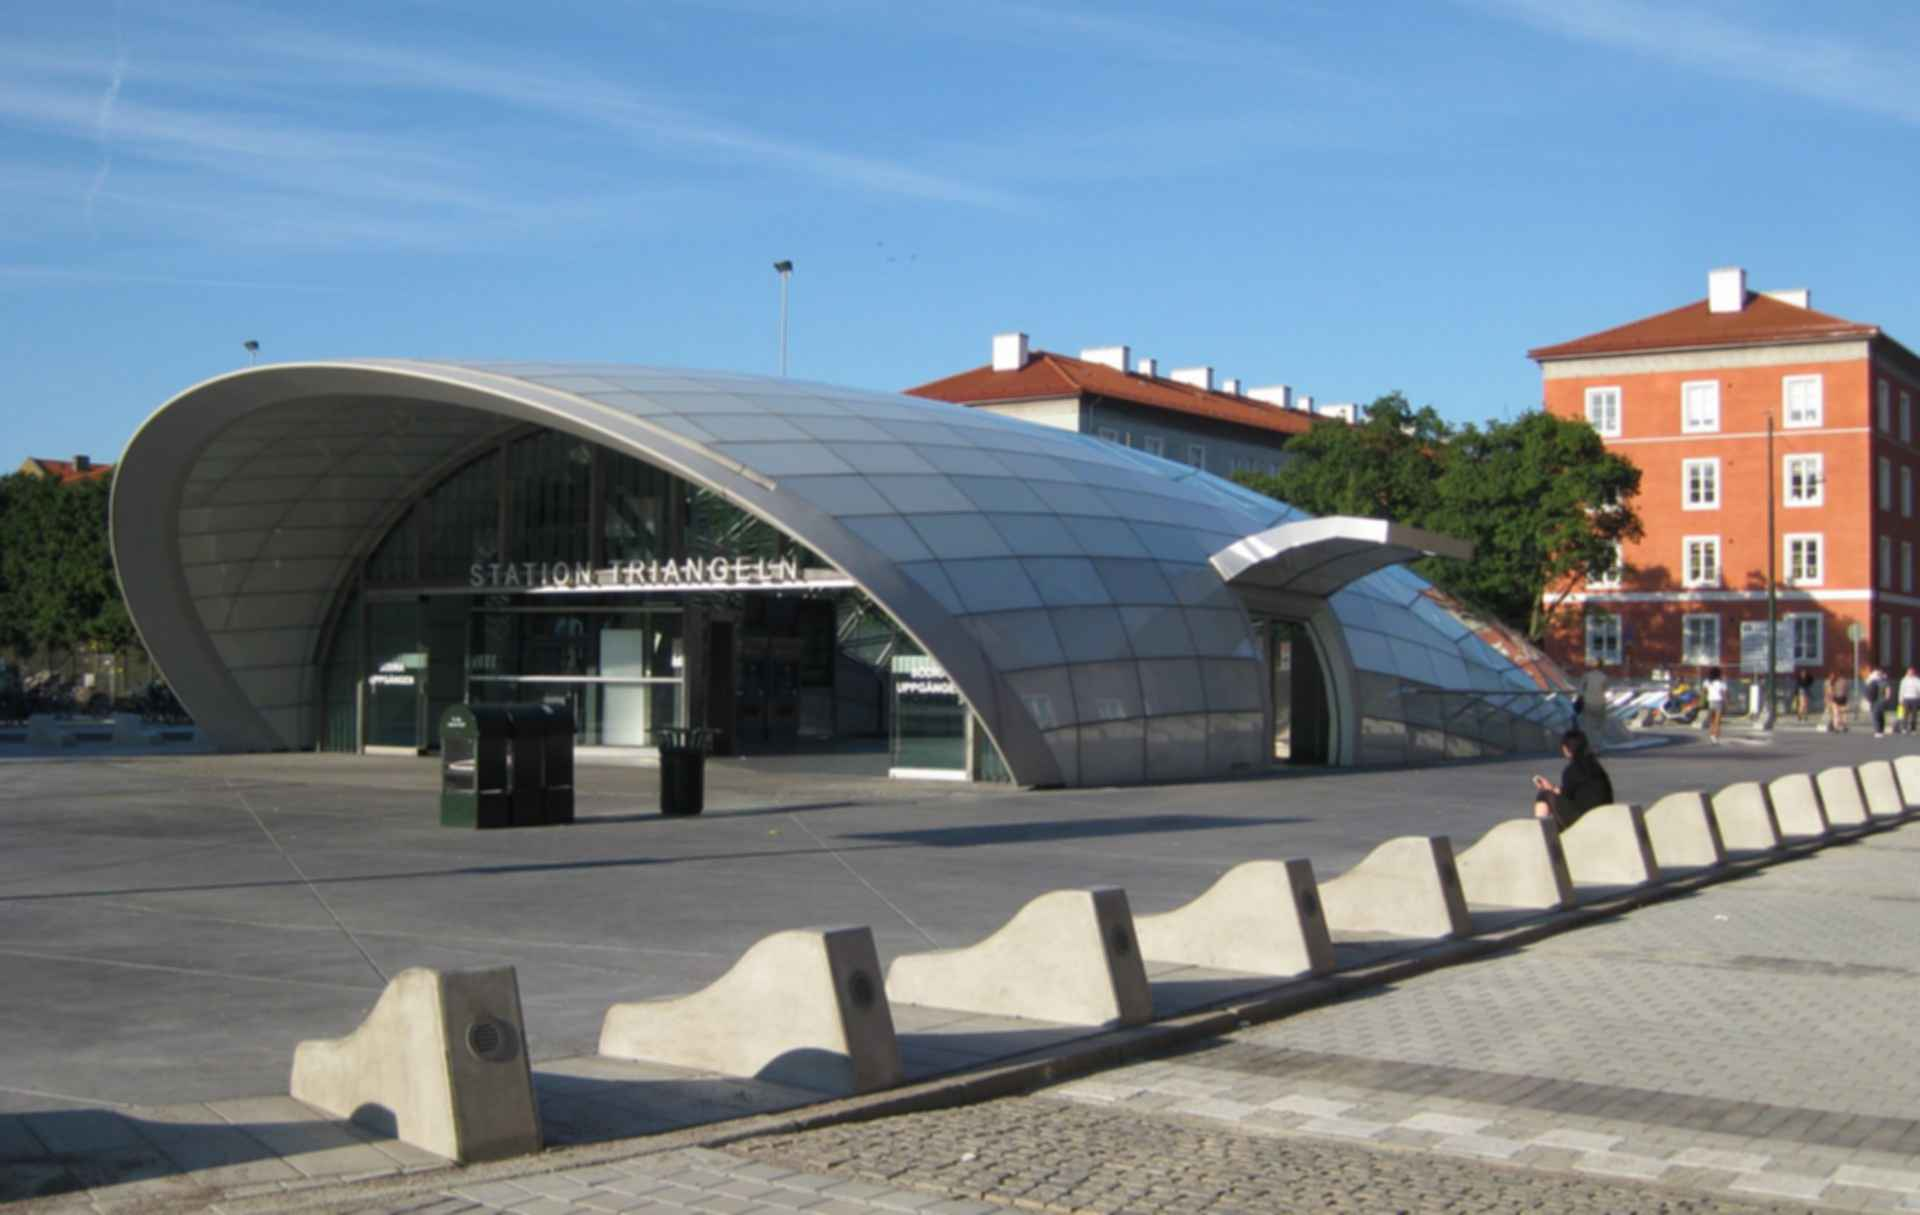 Triangeln Station - Southern Entrance